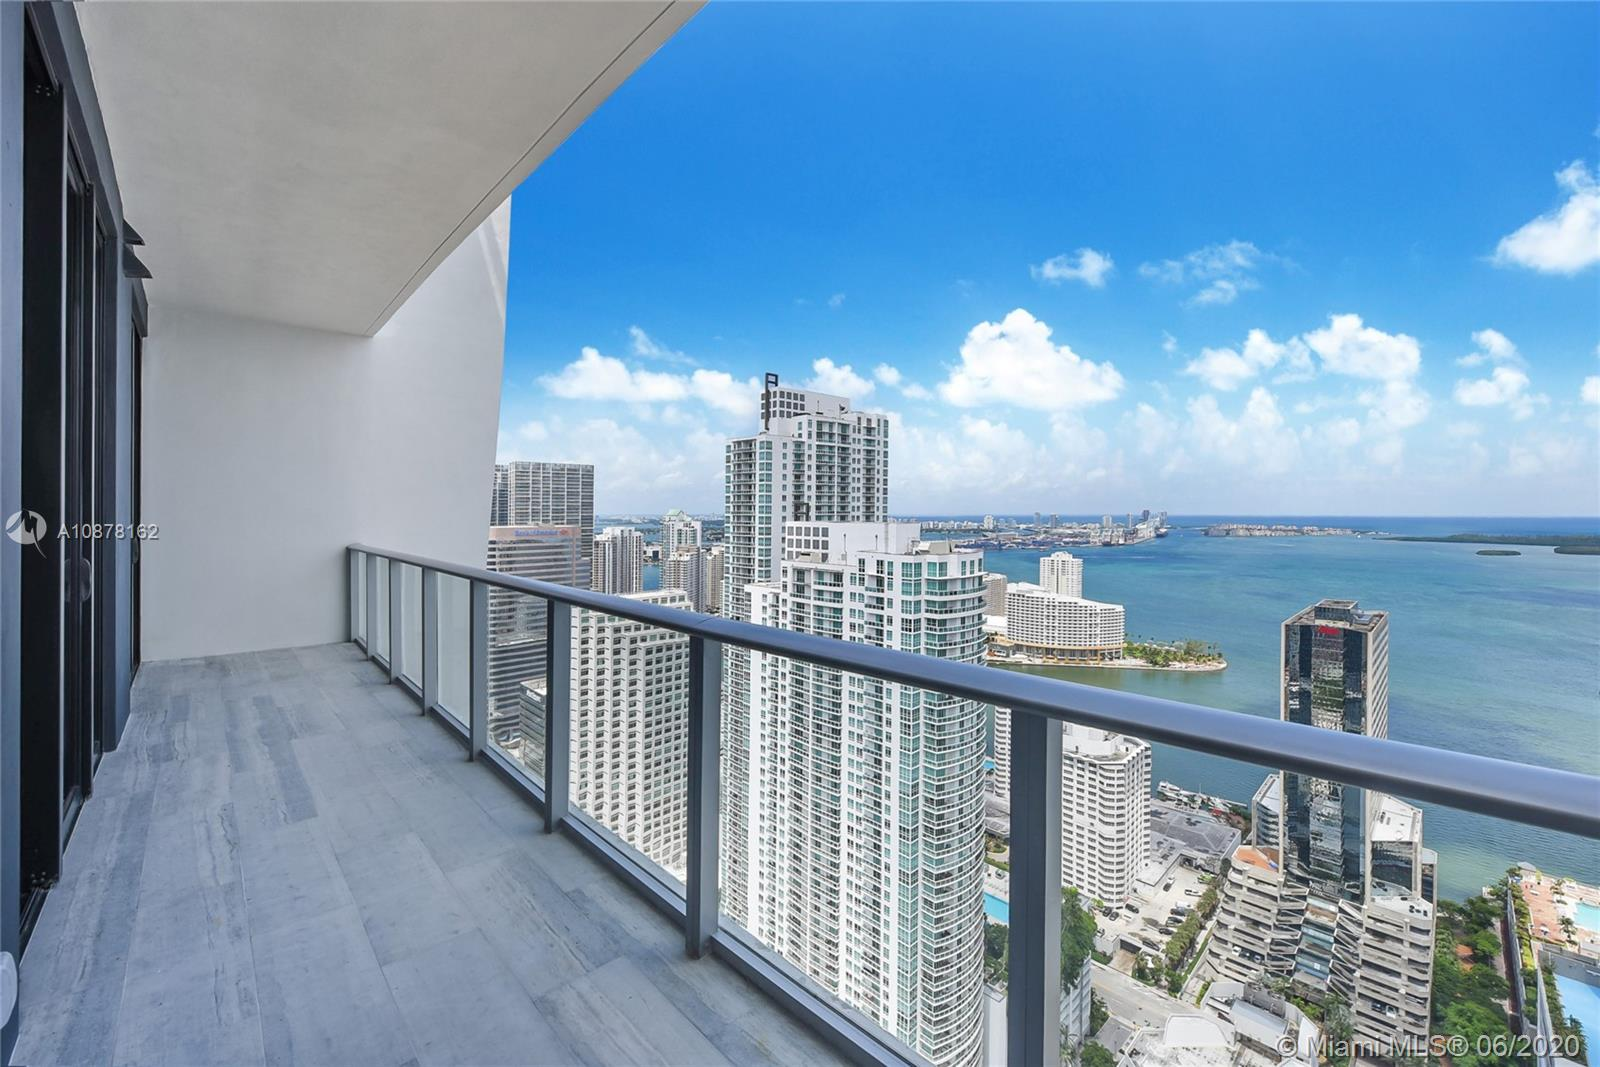 Lower penthouse in the most sough-after new building in Brickell. Unit has 12 feet ceilings, unobstrocted Biscayne Bay views, 2 bedrooms plus a big den, 3 full bathrooms and elevator opens directly to the unit. Completely finished with Opustone Alzata marble floors, custom made closets in all bedrooms, custom made electrical shades and top of the line appliances.  Unit is currently rented until May 2, 2020 at $4,250 monthly. Upgrades throughout.